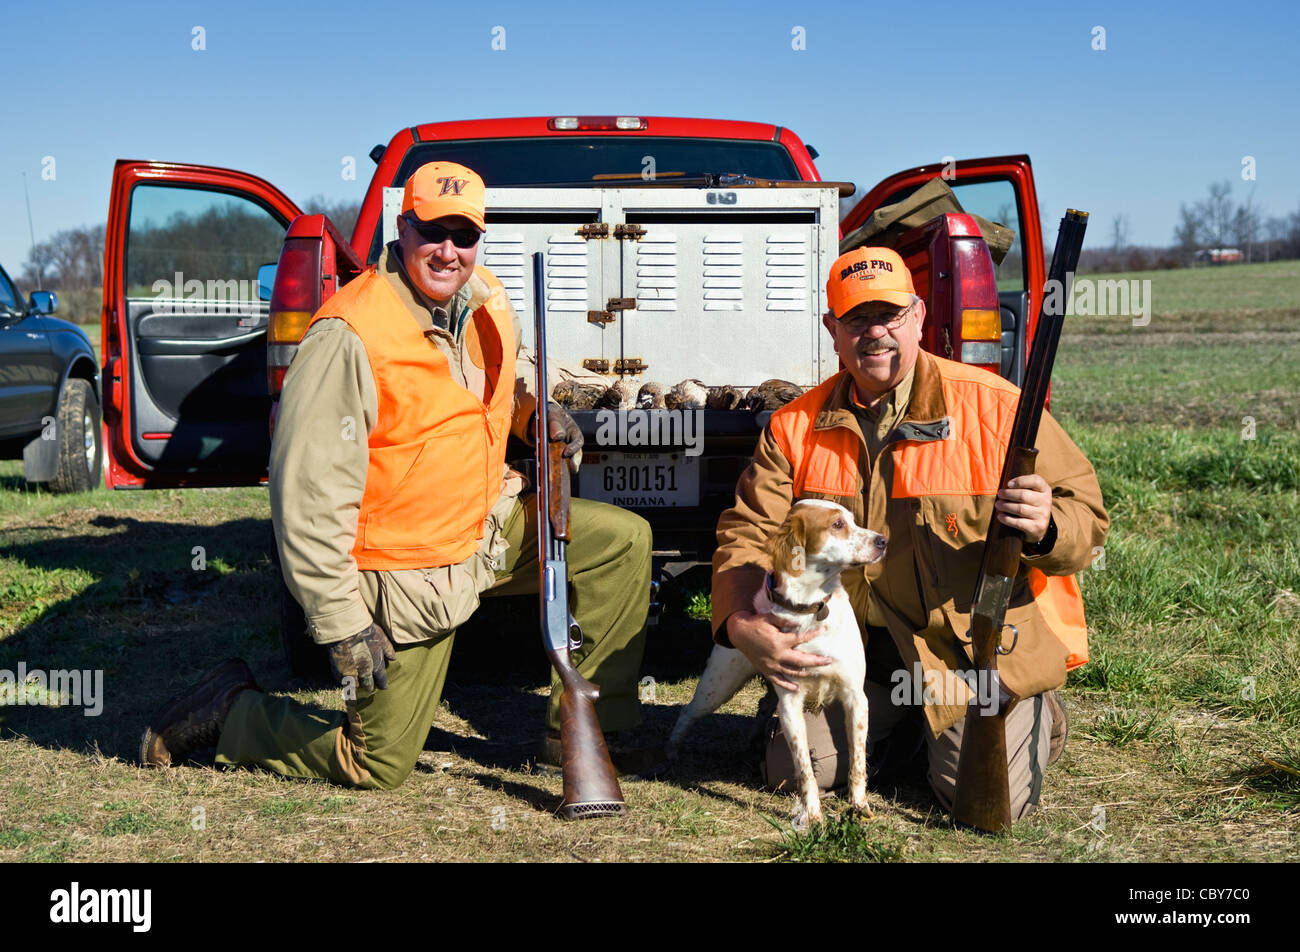 Two Upland Bird Hunters Posing Behind Truck with Shotguns, Quail and English Setter - Stock Image